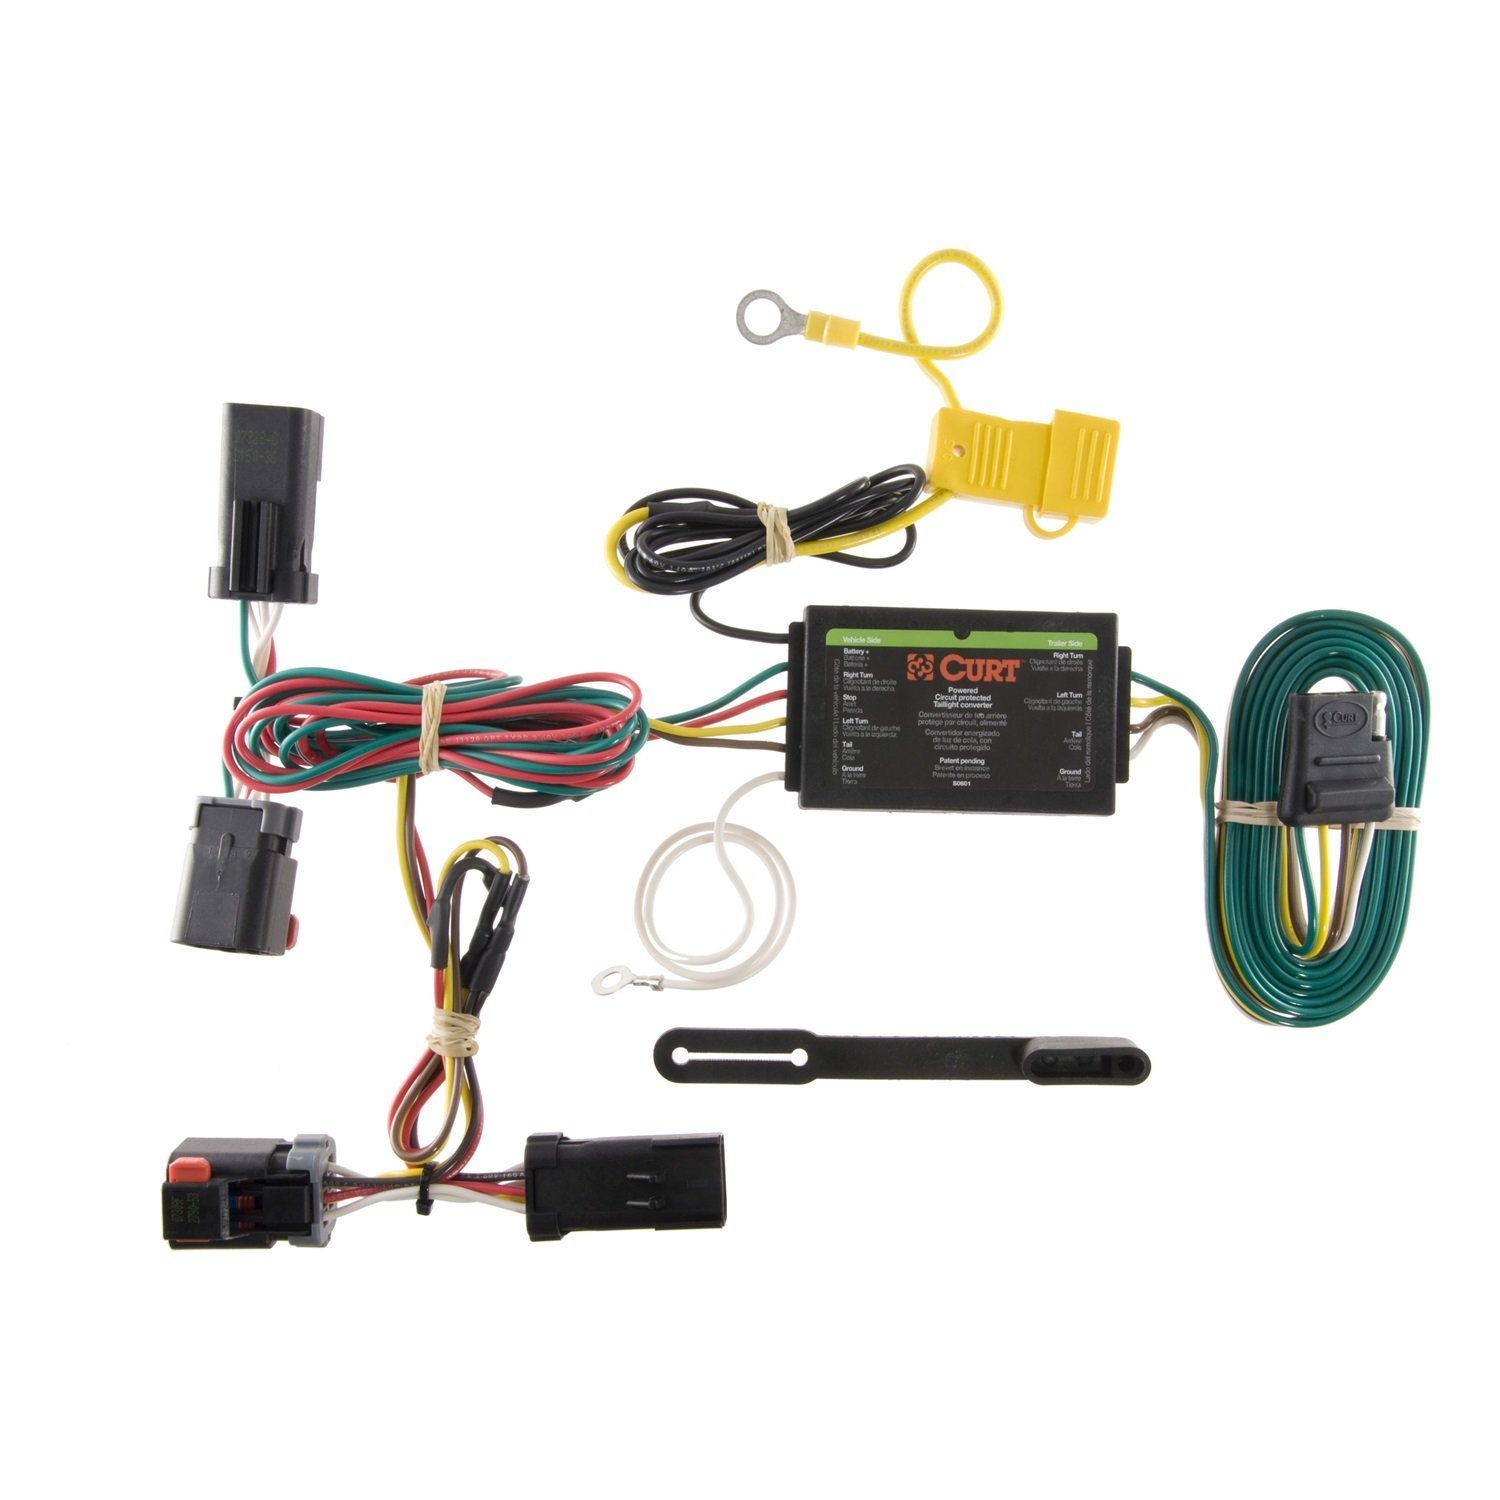 Get Quotations · Trailer Hitch Wiring Fits 2011 Chrysler 300C Plug/Play  Wire Harness